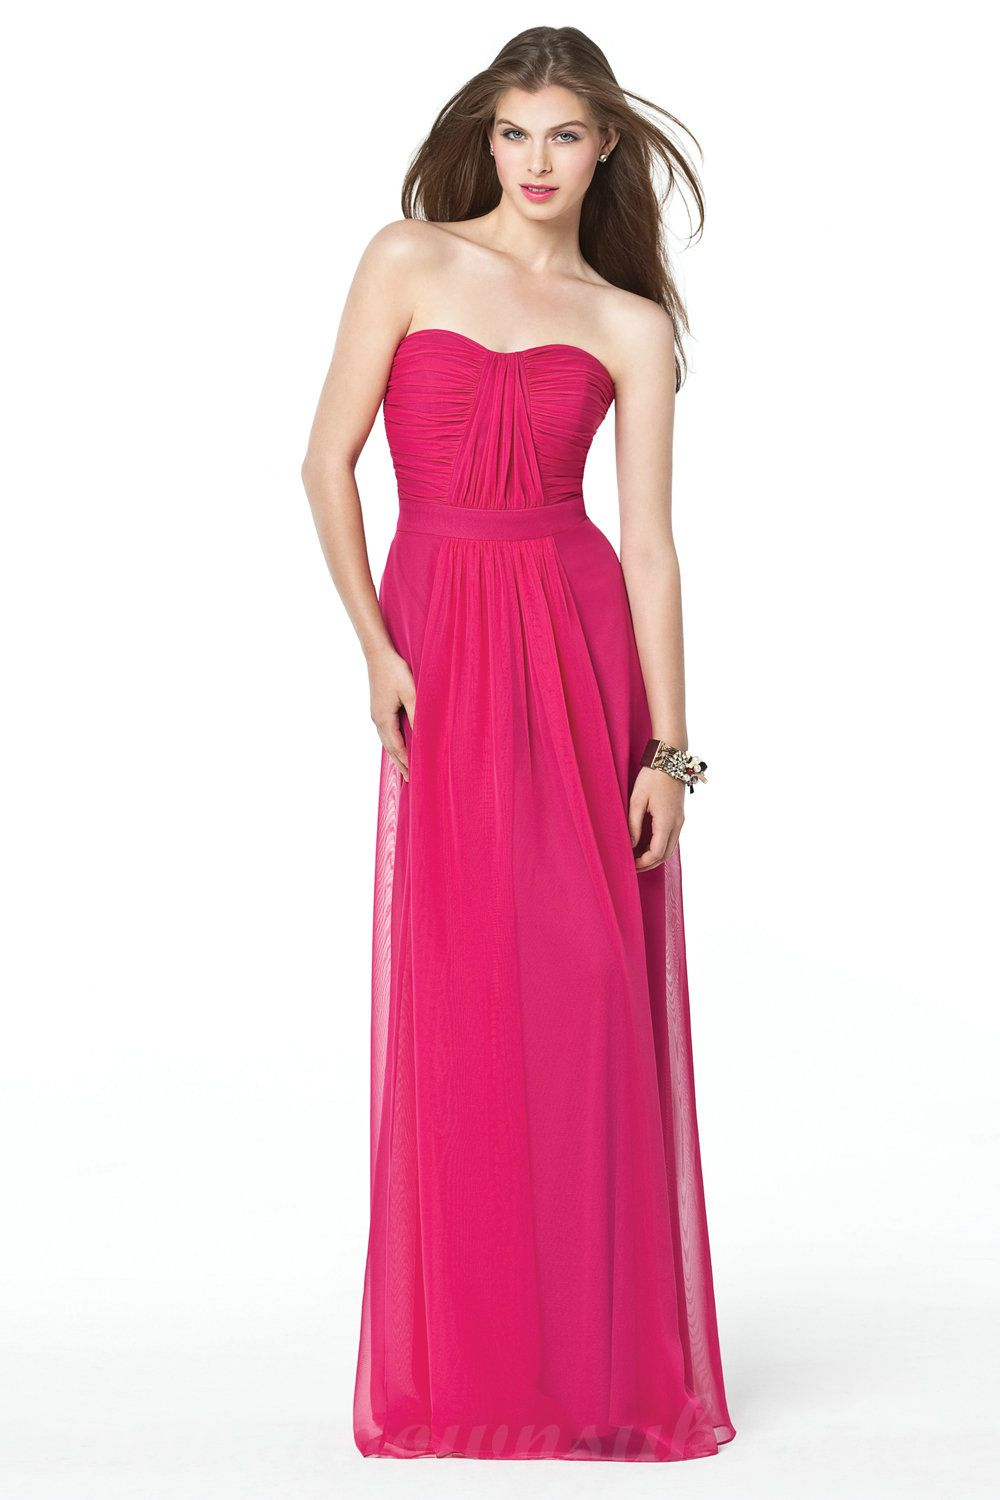 Fuschia pink bridesmaid dresses uk top 100 pink bridesmaid fuschia pink bridesmaid dresses uk ombrellifo Image collections